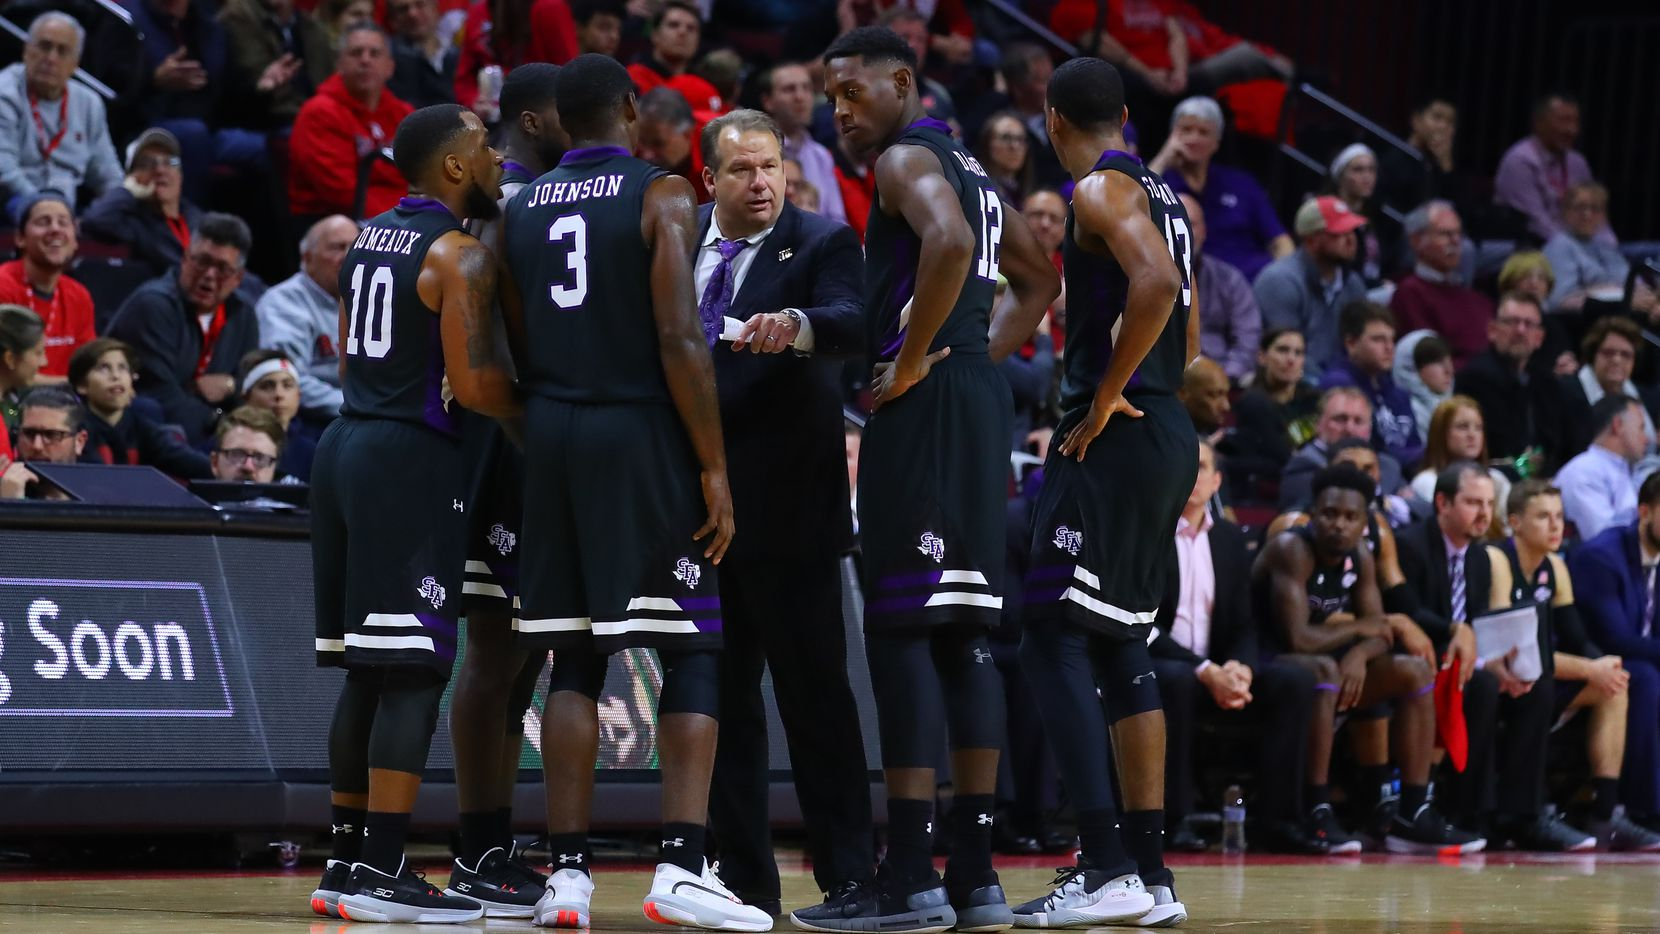 Stephen F. Austin head coach Kyle Keller (center) talks with his players during the second half of a game against Rutgers on Nov. 20, 2019, at Louis Brown Athletic Center in Piscataway, N.J. (Photo by Rich Graessle/Icon Sportswire via Getty Images)